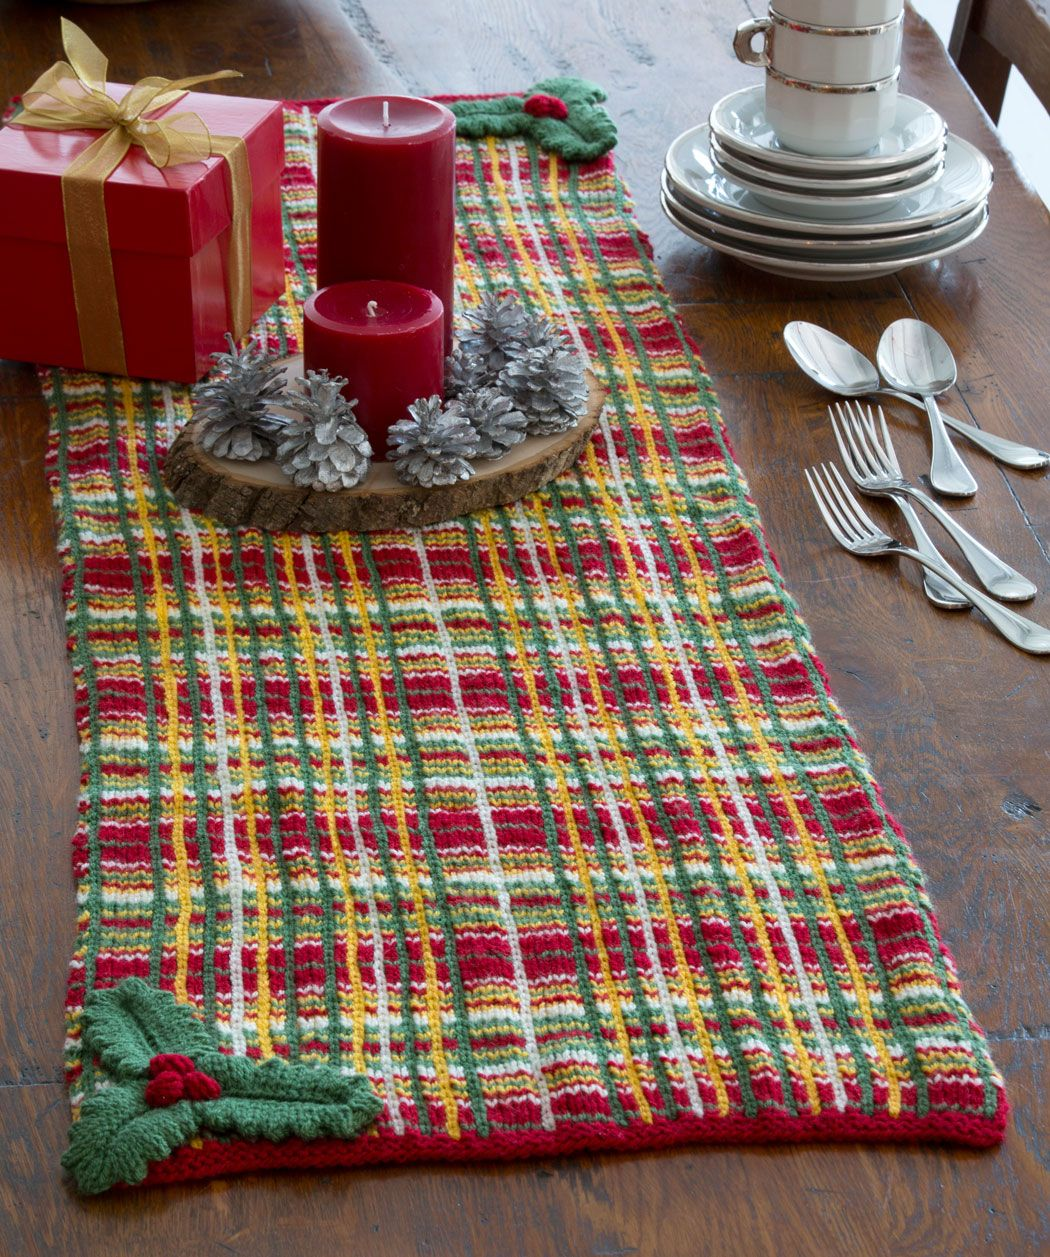 Holiday table runner free knitting pattern from red heart yarns holly and berries stripe crochet table runner pattern for 2014 christmas wooden holder pine cones red candles tableware set bankloansurffo Images